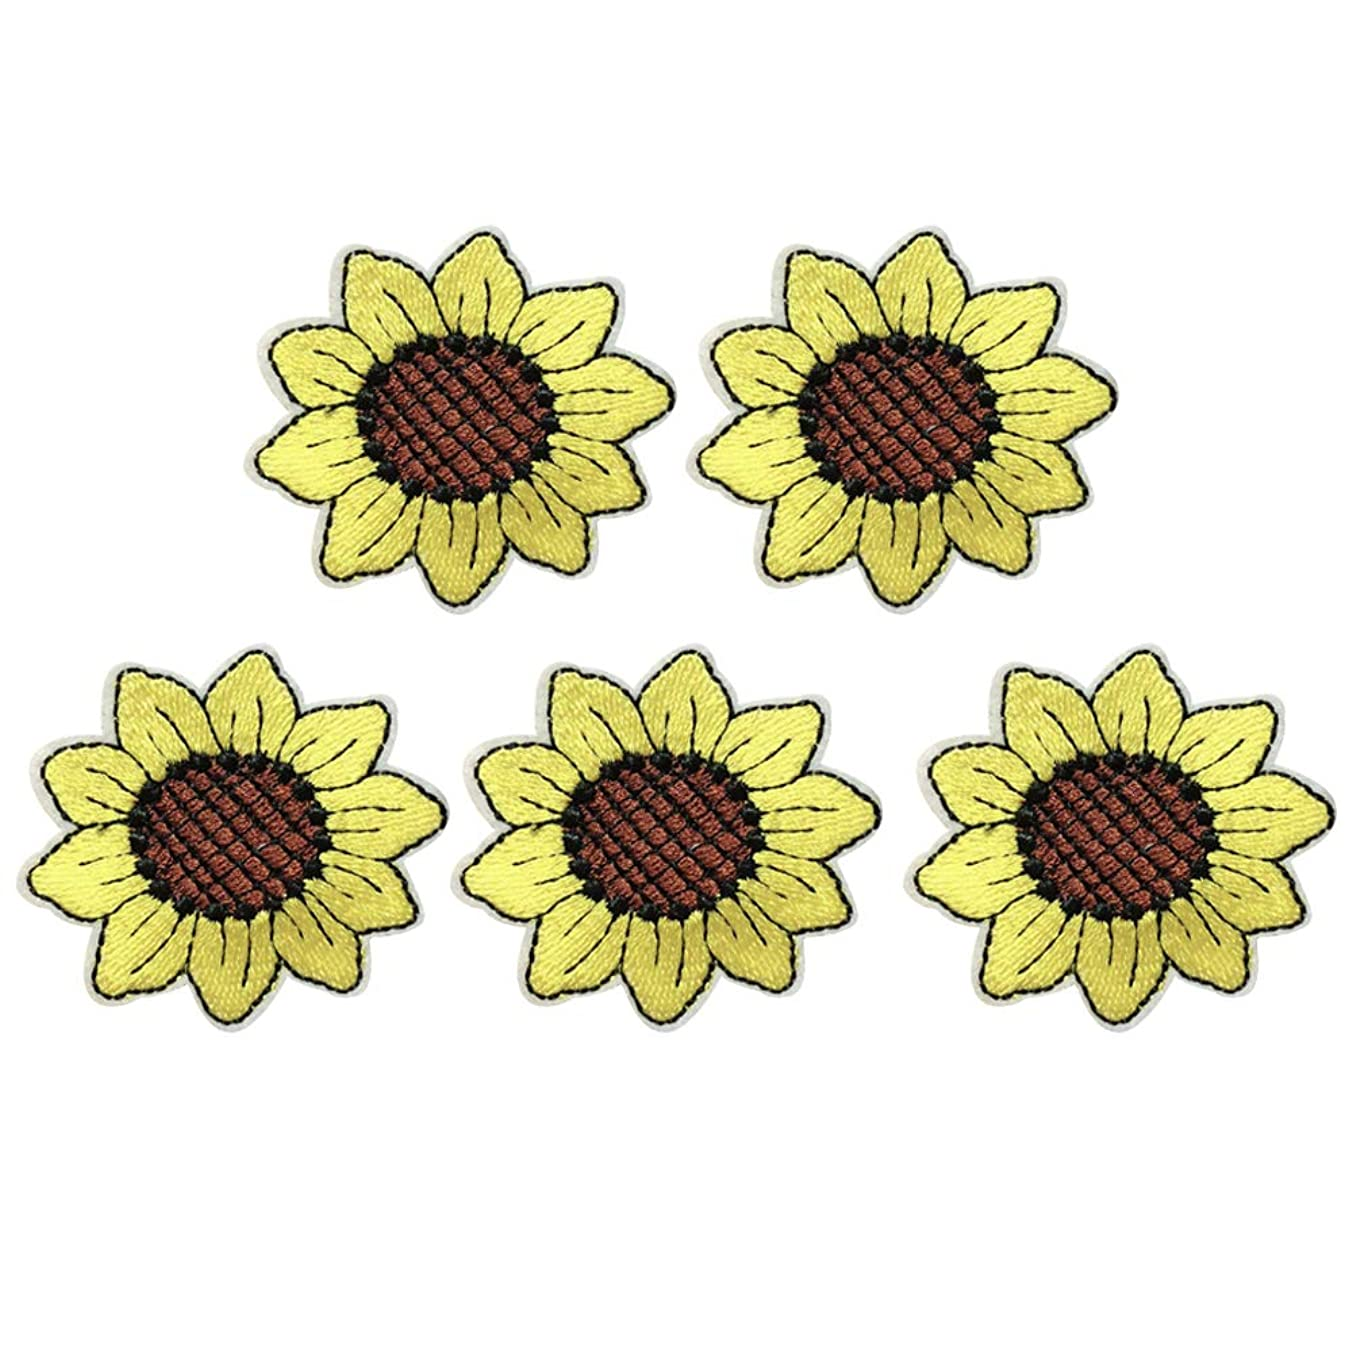 XUNHUI Flower Patch Embroidery Sunflower Iron On Patch for Clothing Craft Small Yellow Flower Cute Repair Stciker for Dress Hat Bags 5 Pieces